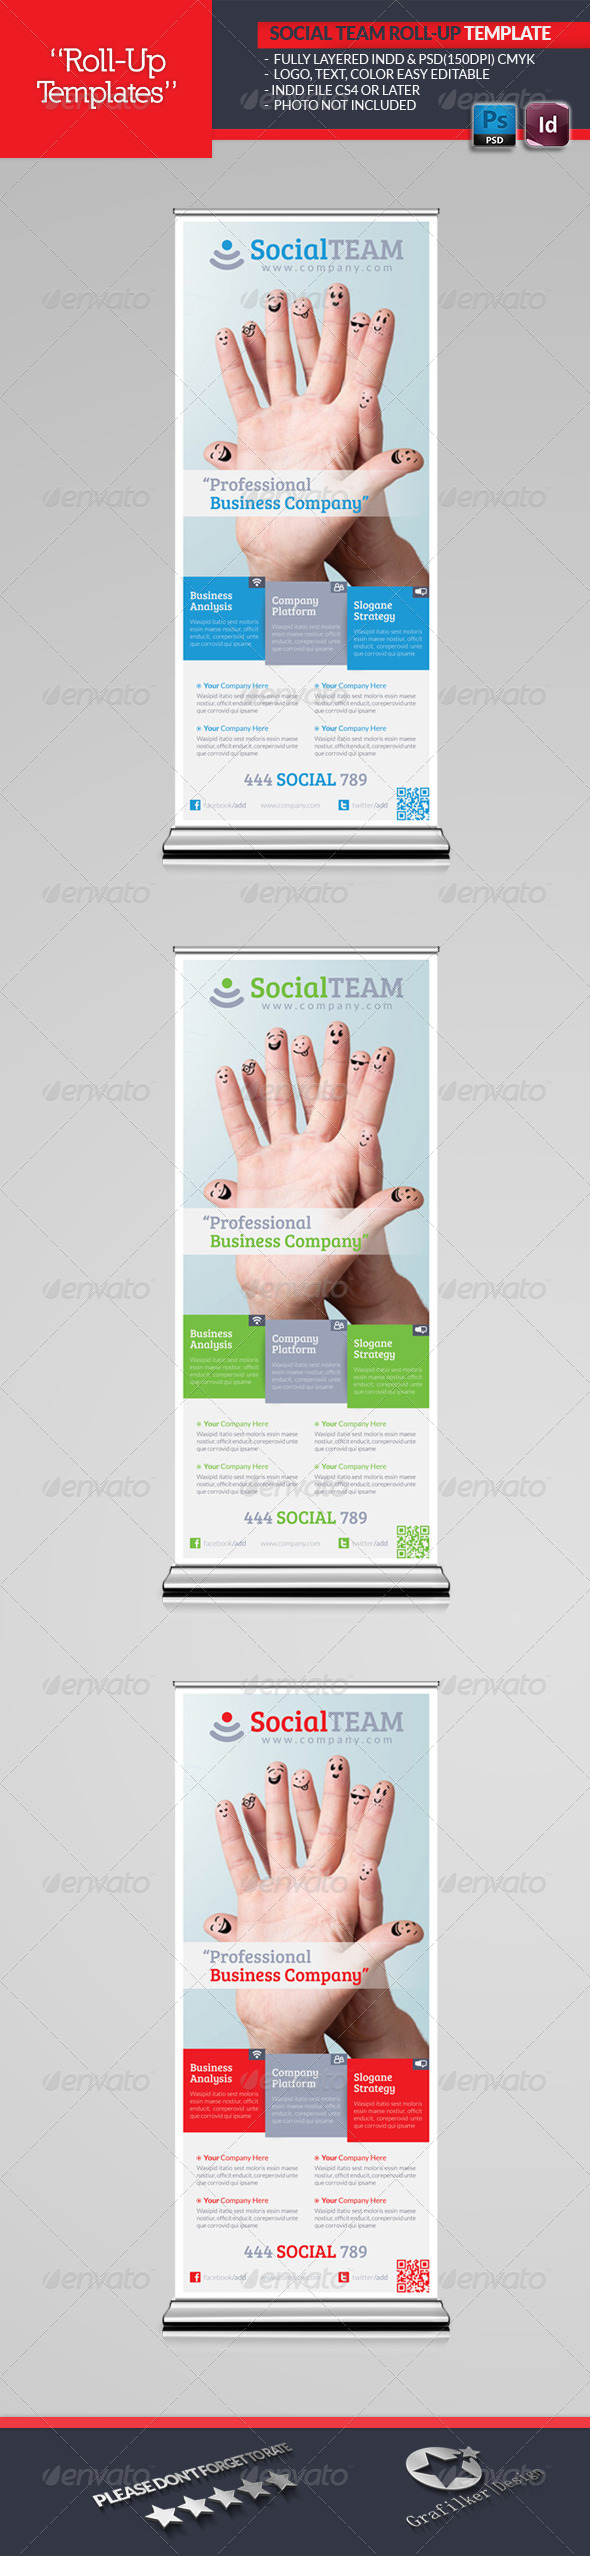 GraphicRiver Social Team Roll-Up Template 4914996